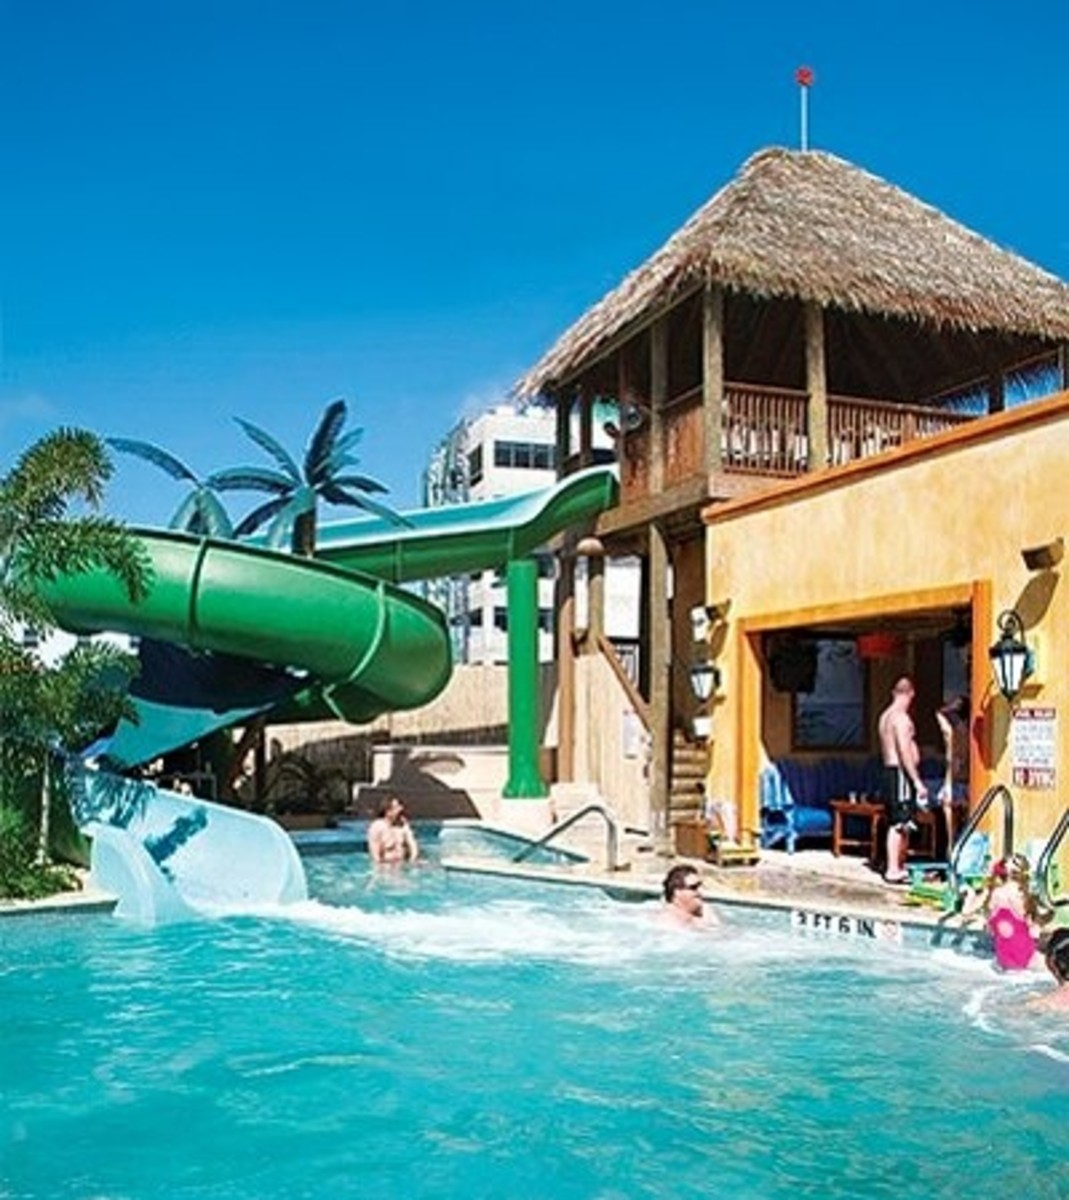 Water playground is one of the fun attractions at Margaritaville.